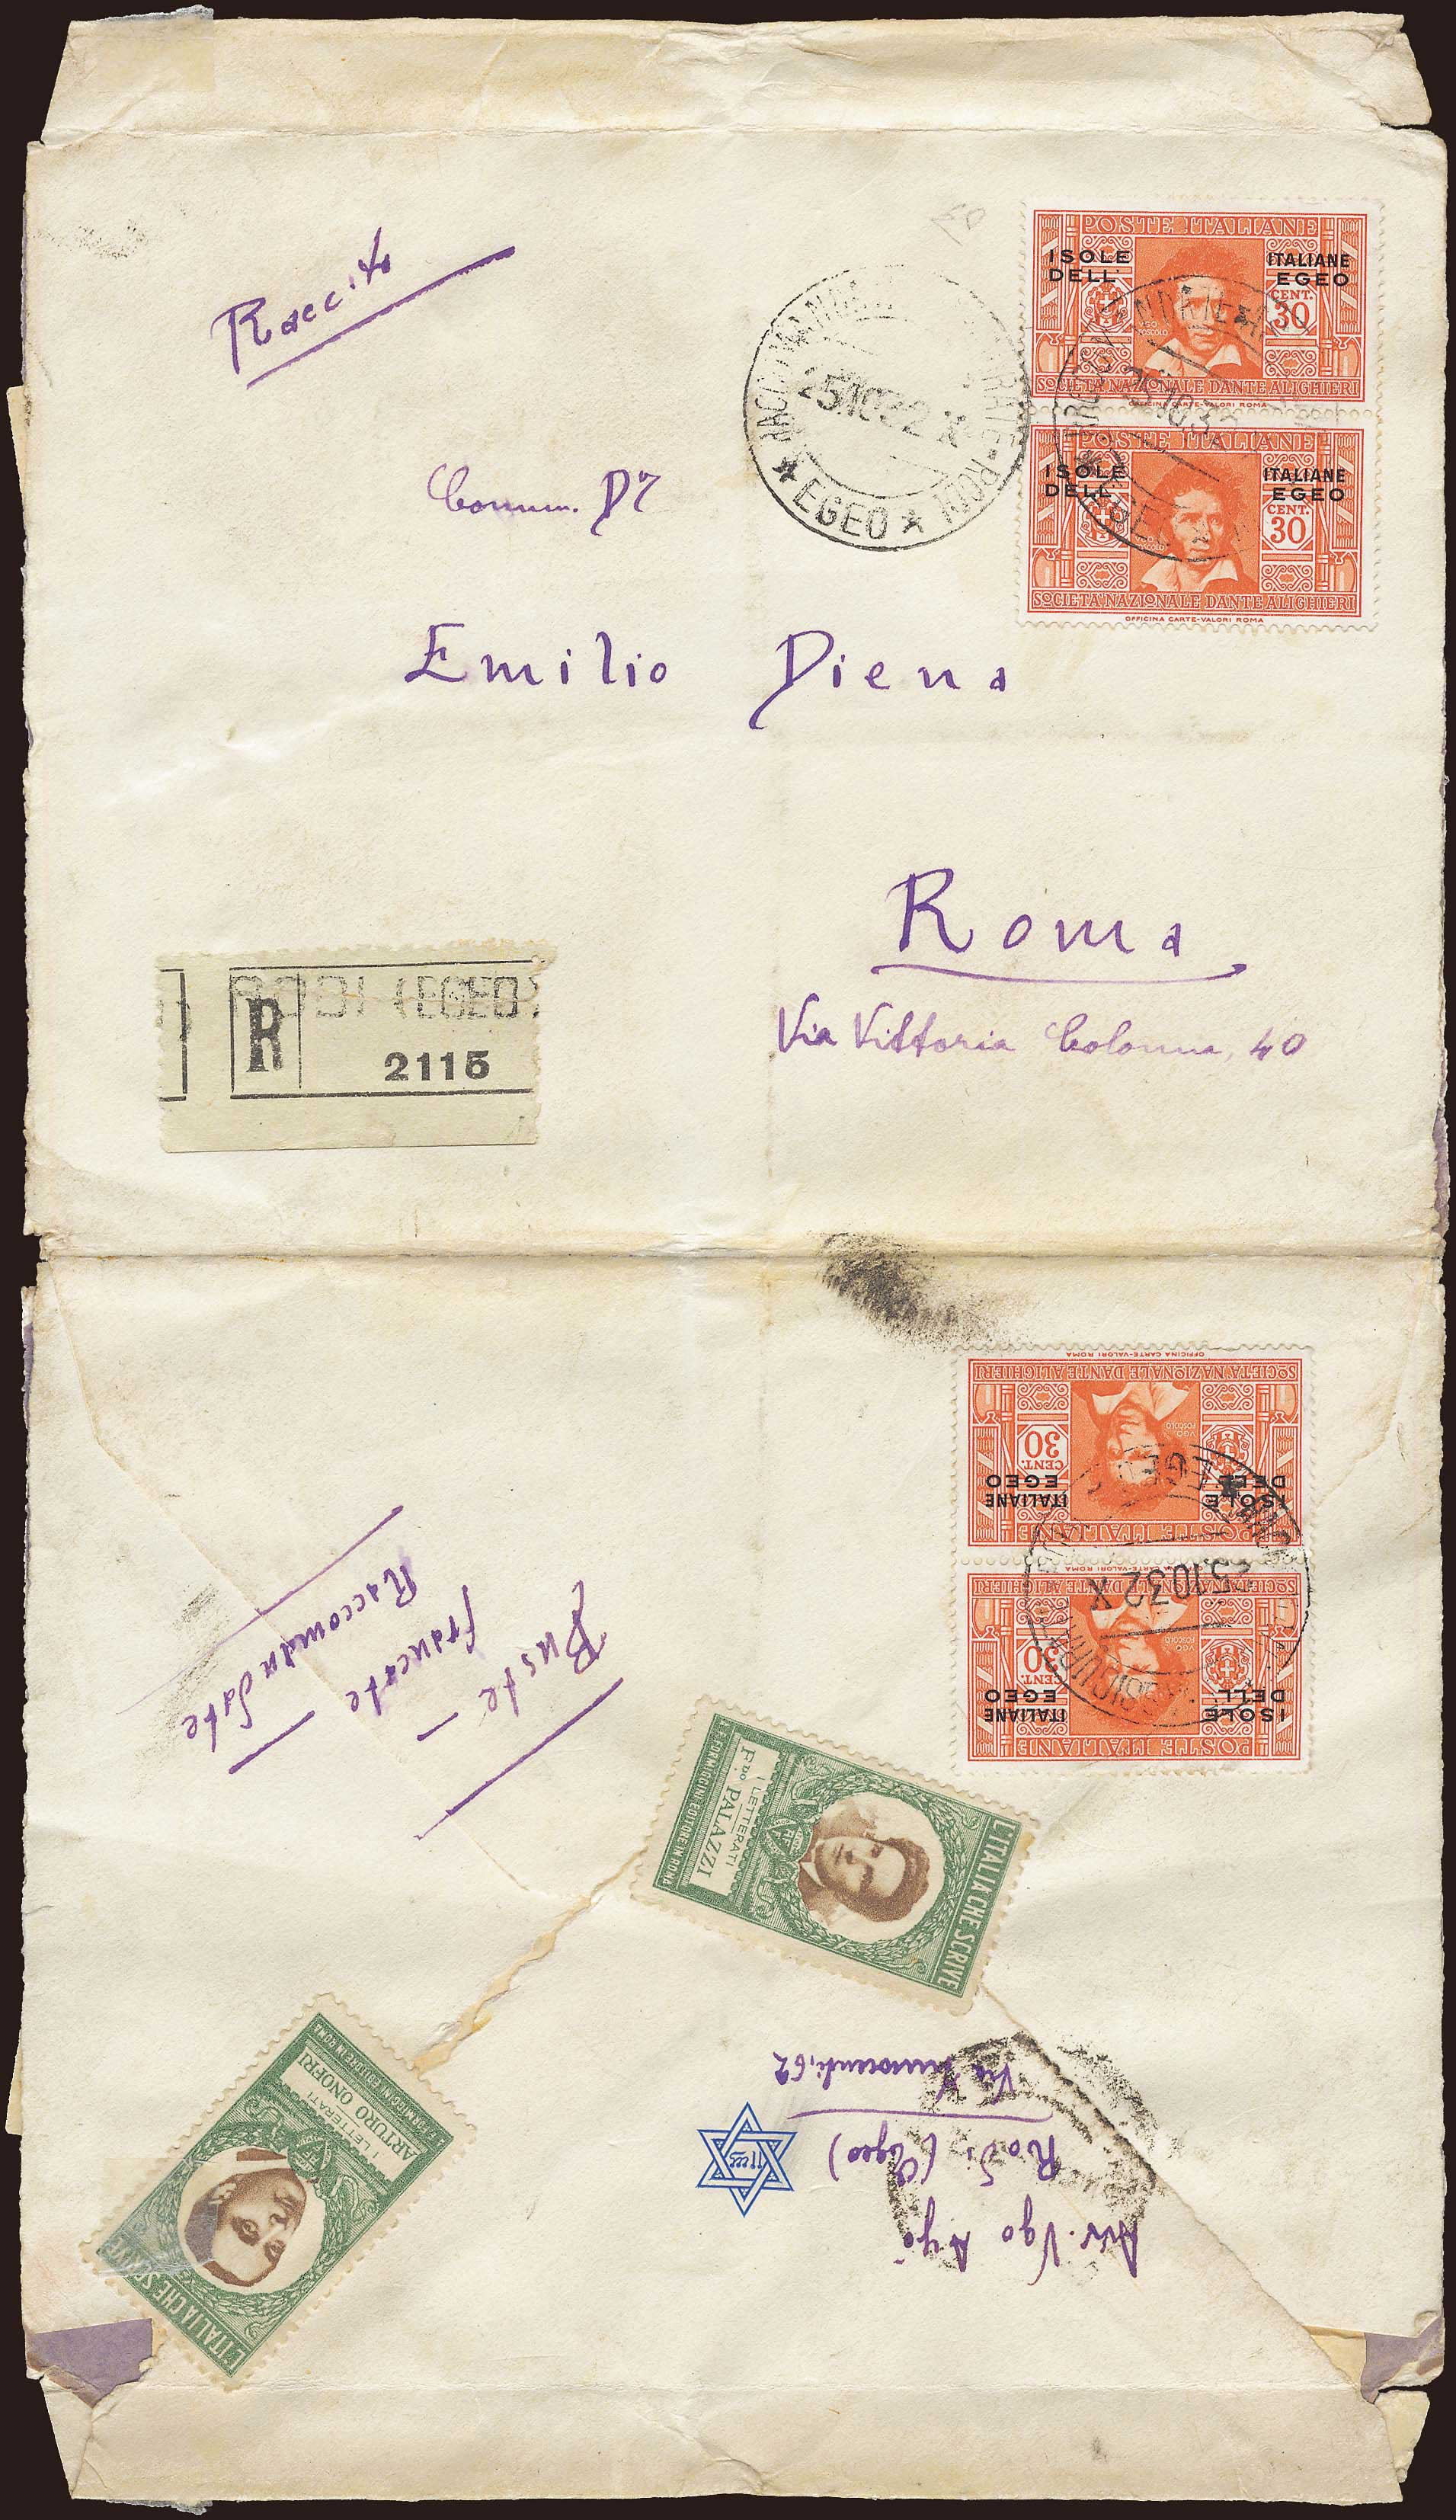 Lot 662 - Dodecanese italian dodecanese - italian post office issues -  A. Karamitsos Postal & Live Internet Auction 680 General Philatelic Auction